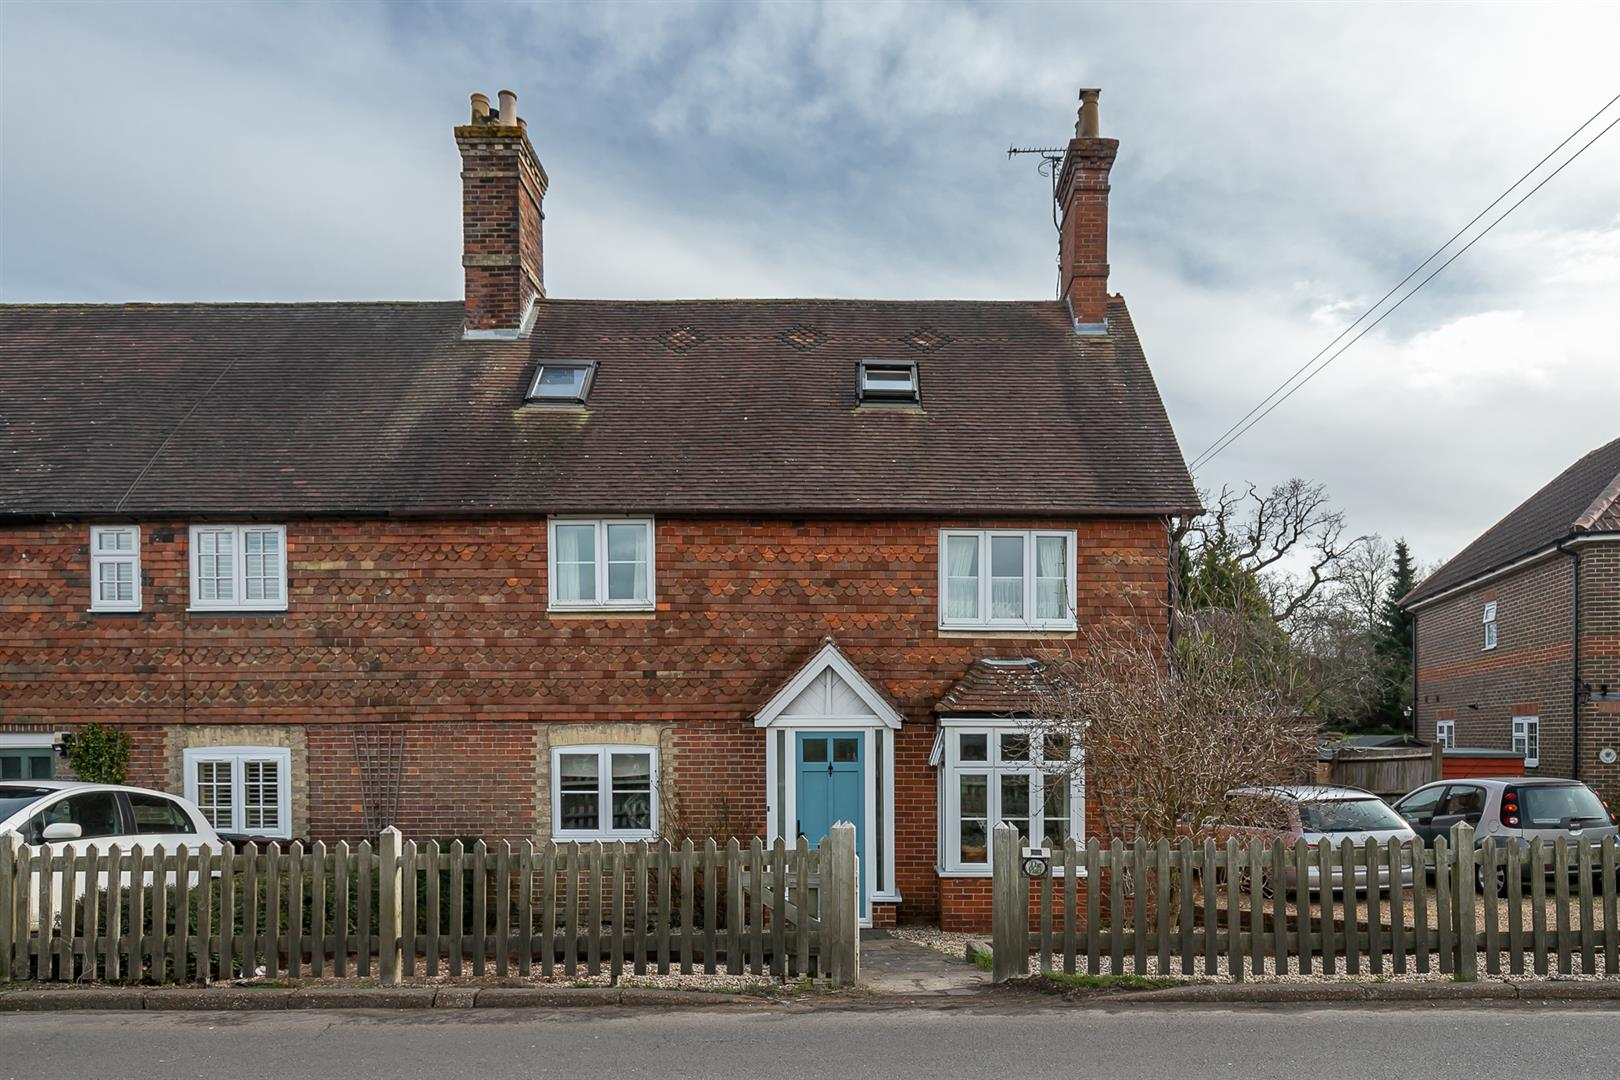 4 bed house for sale in Lower Platts, Ticehurst, TN5